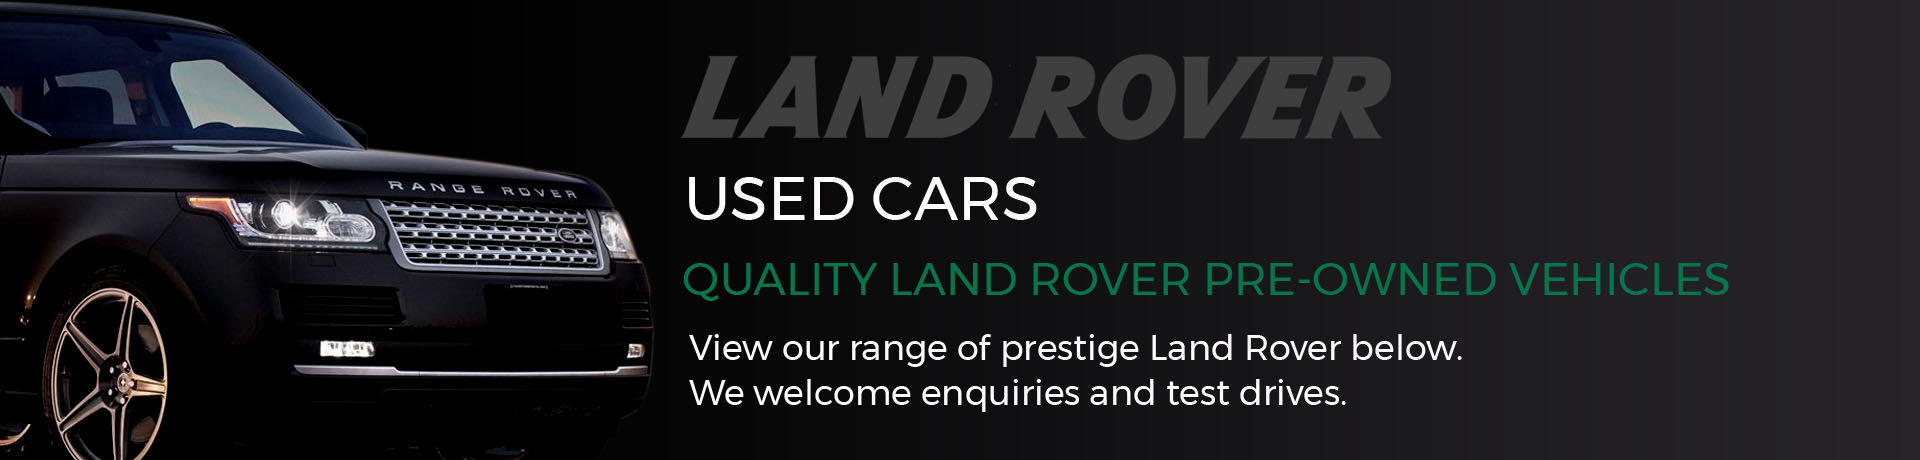 Land Rover used cars in adelaide